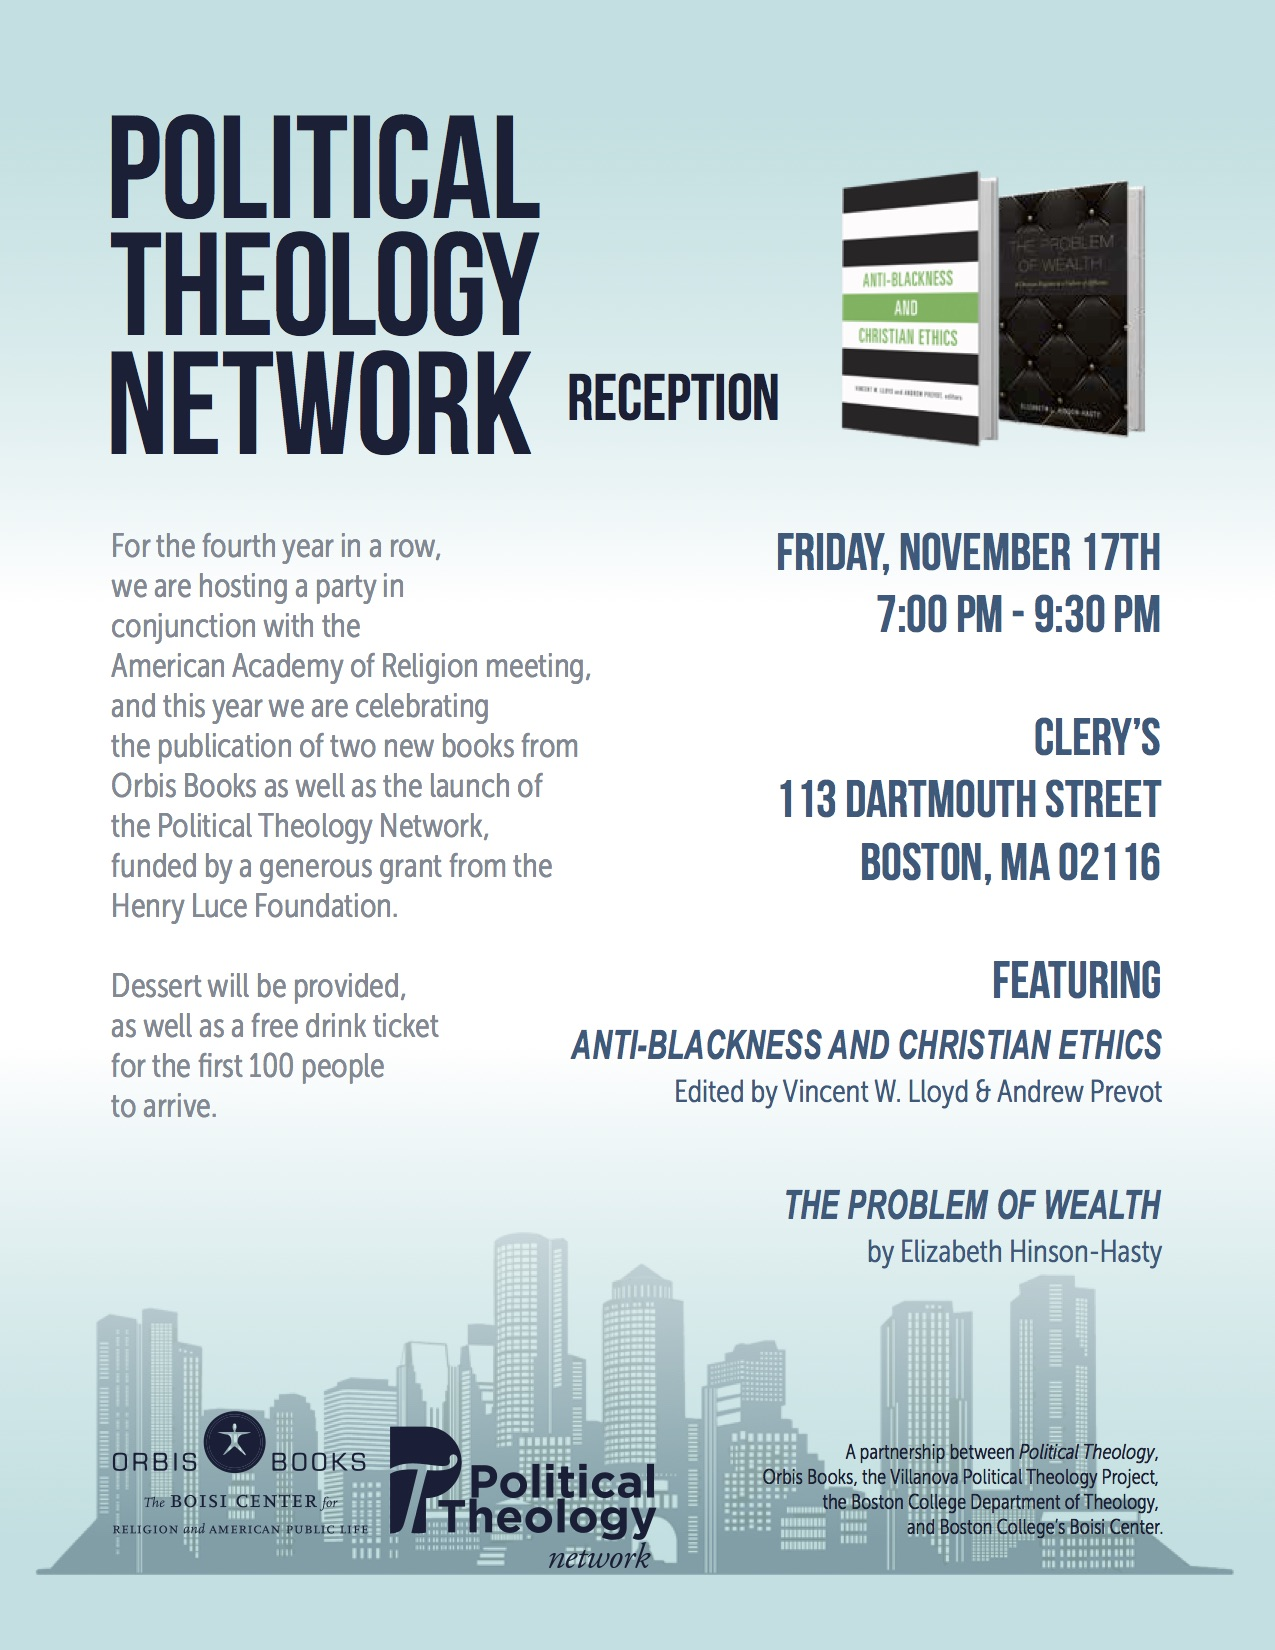 Annual Reception For Political Theology At 2017 Aar-Sbl Meeting – You Are  Cordially Invited | Political Theology Network